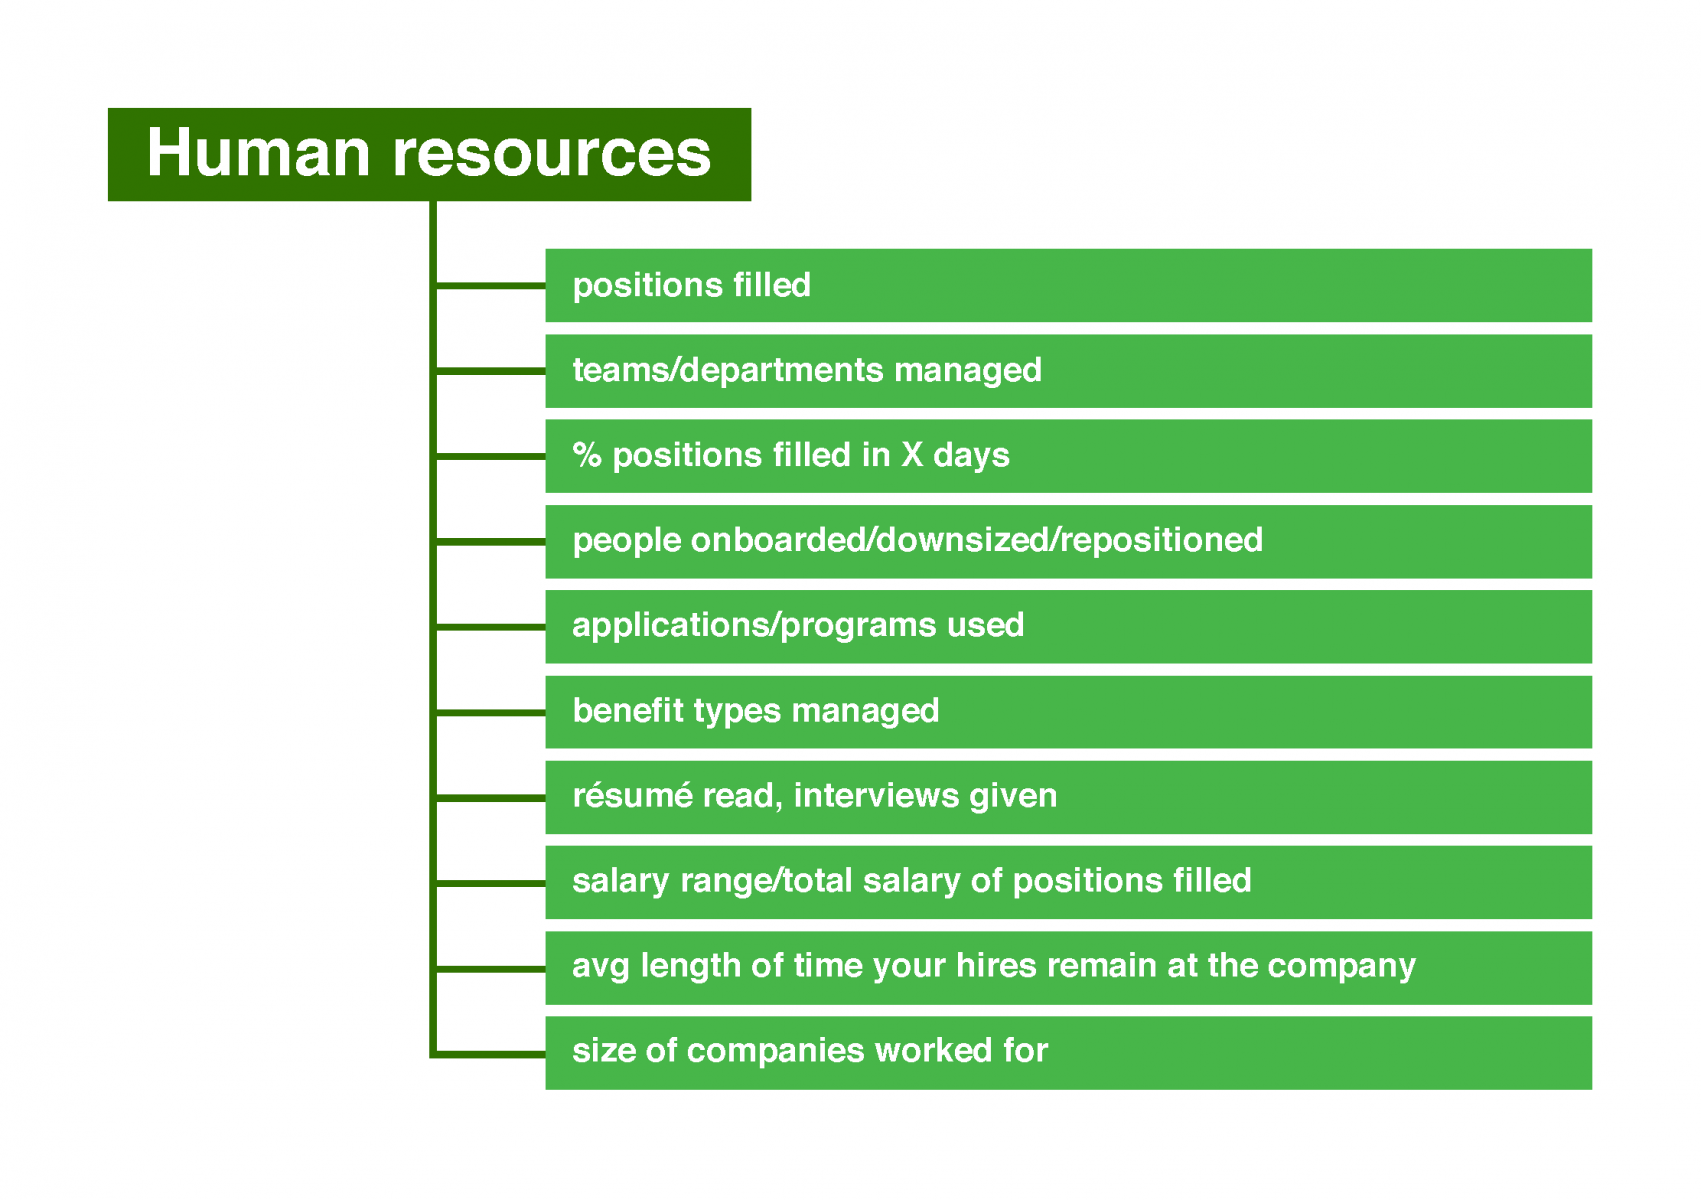 Potential numbers for human resources